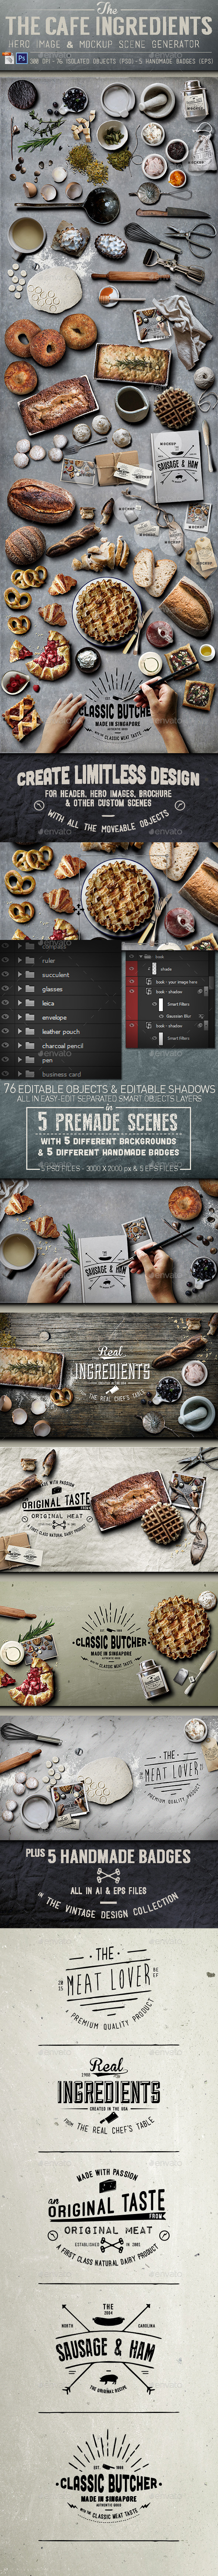 GraphicRiver Cafe Ingredients Hero Image 11781215